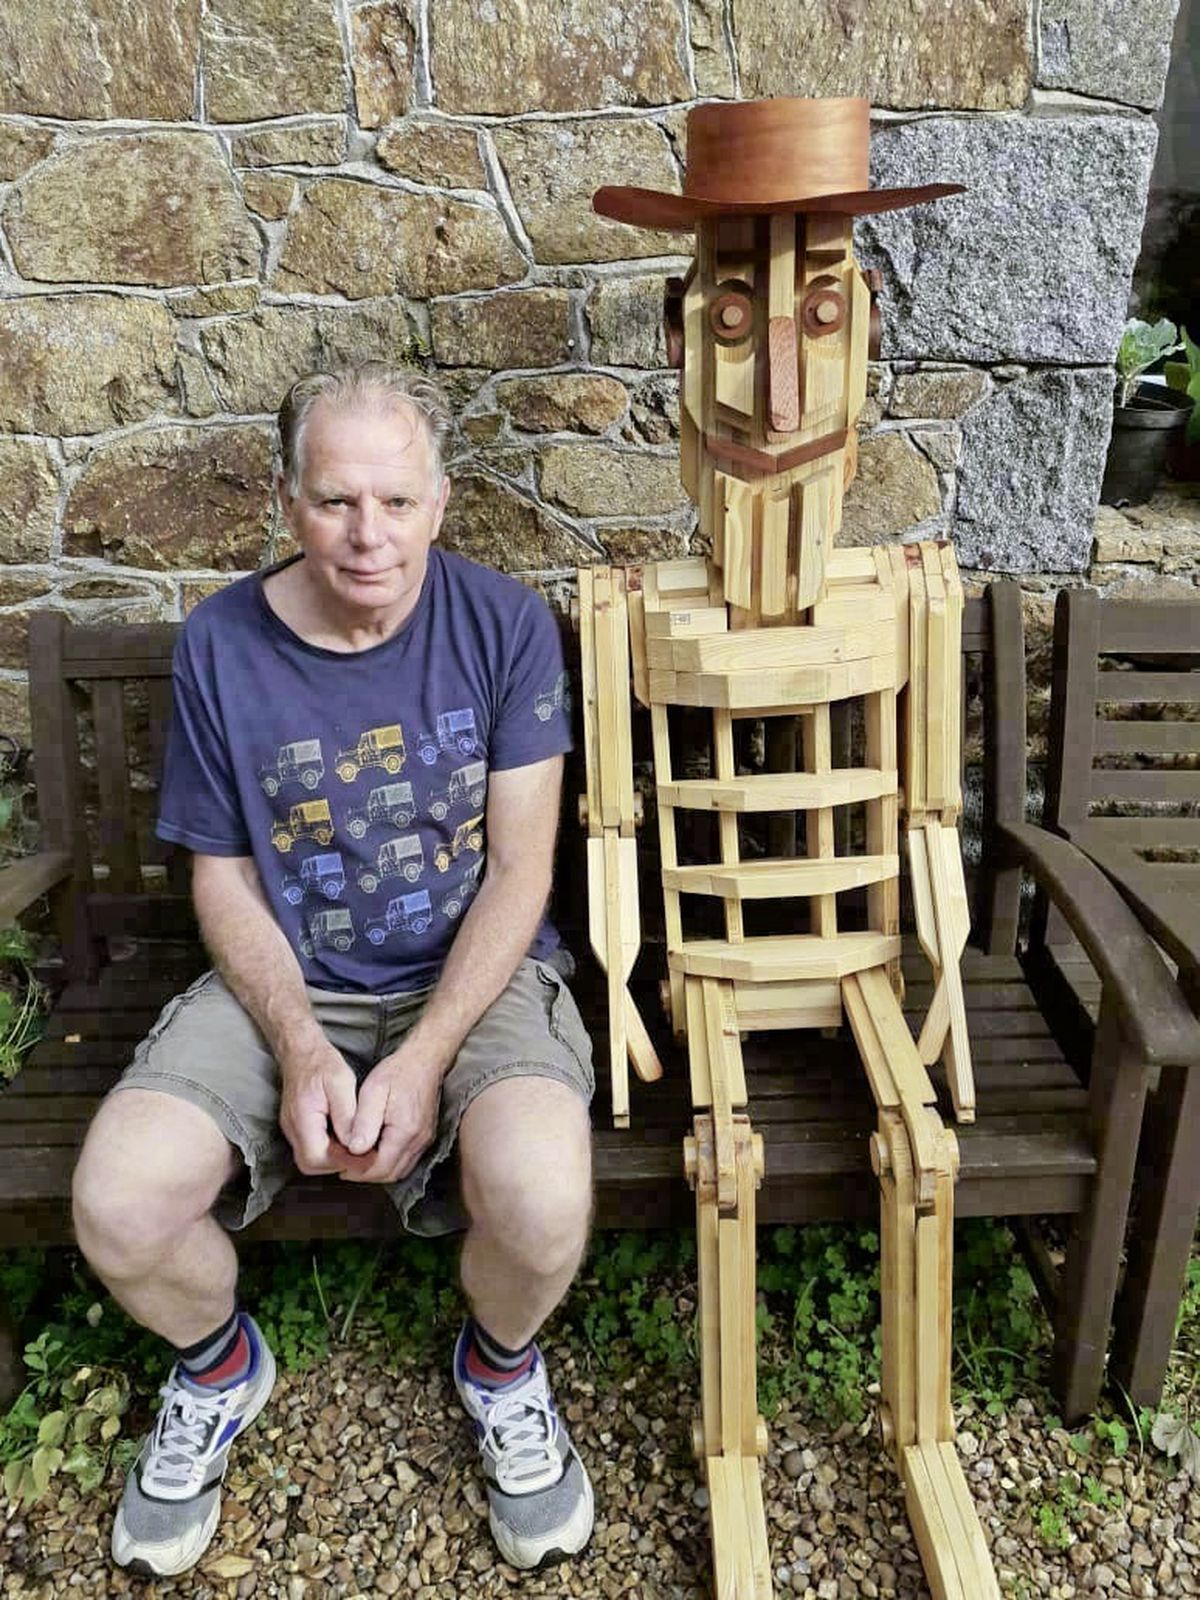 Martin Spratt with the Woody exhibit he created and which won the People's Choice Award at Torteval's 18th Annual Scarecrow Festival. (29810683)